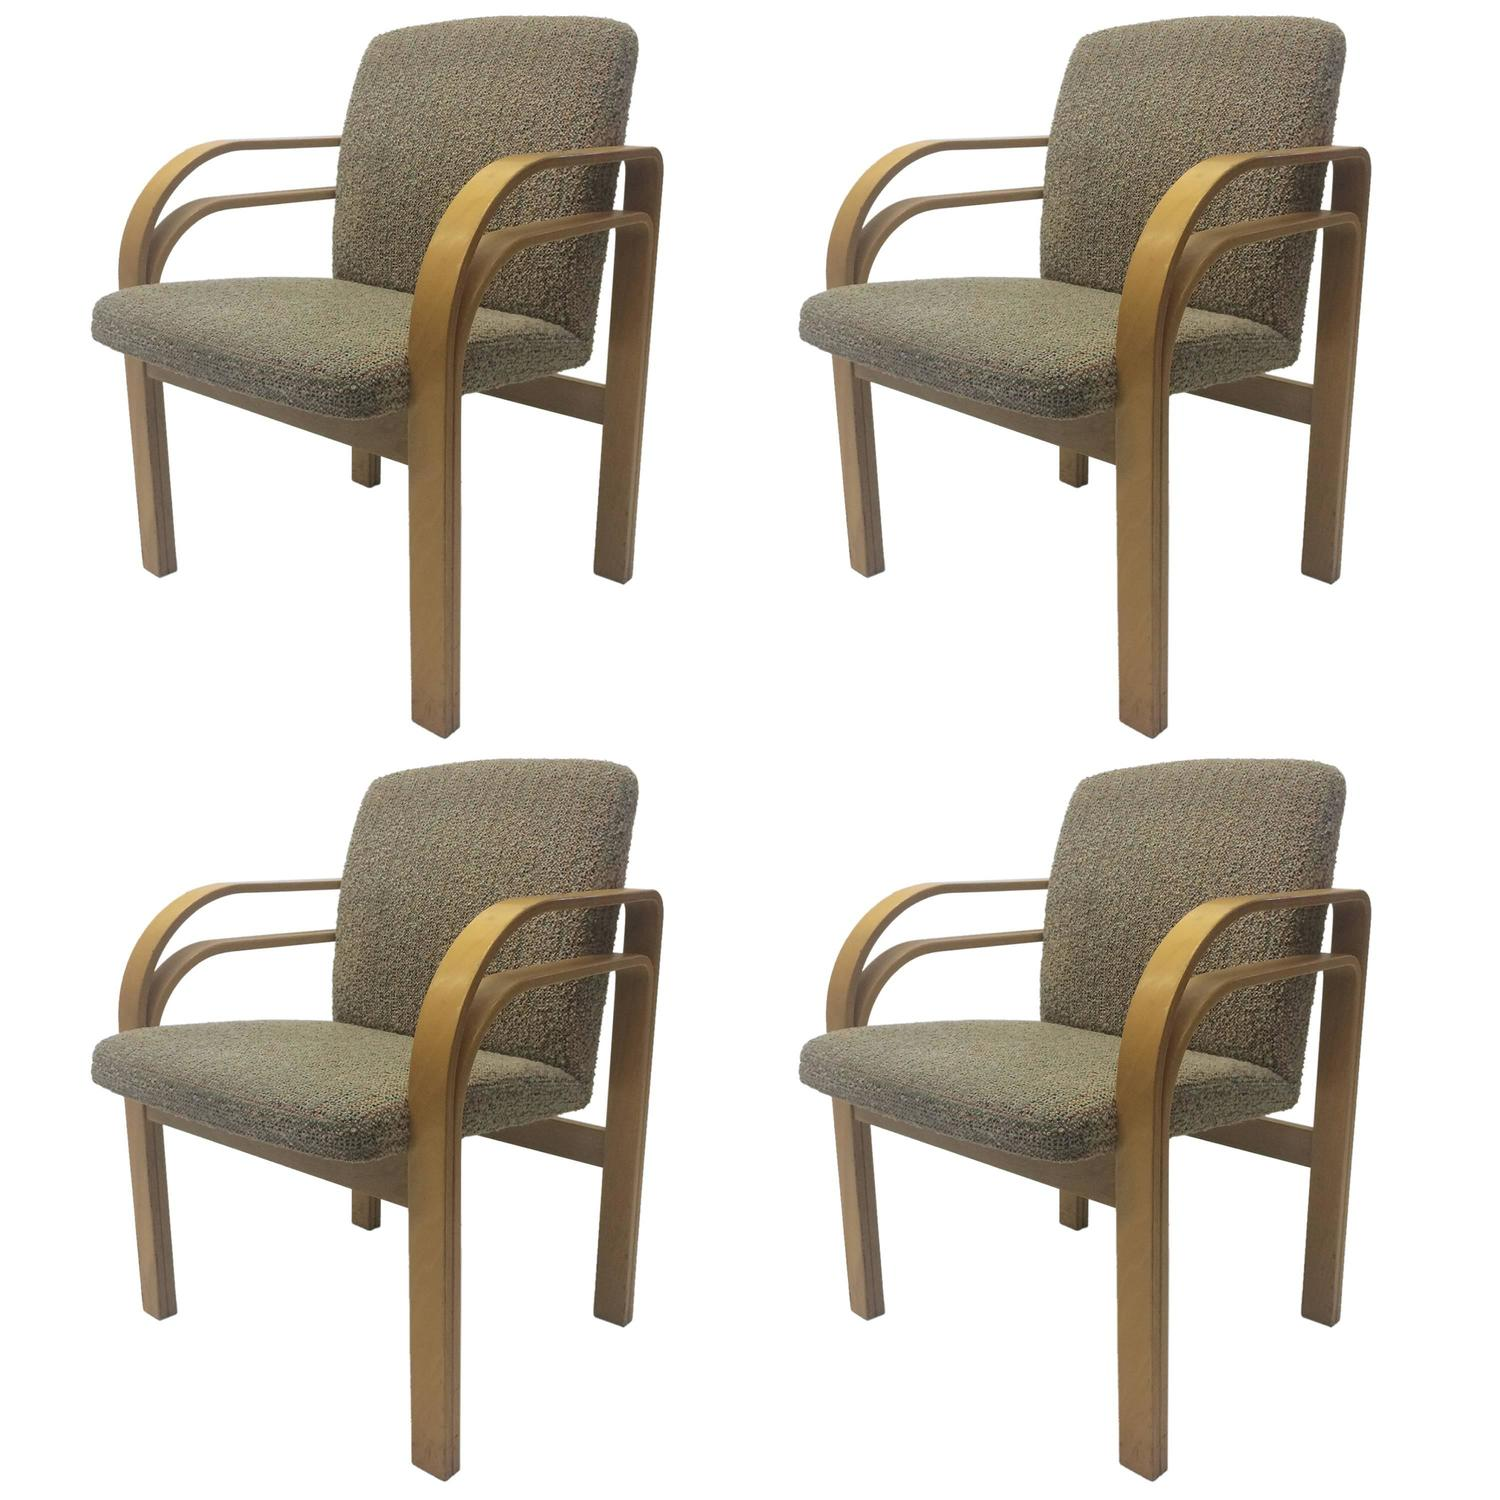 Four bentwood chairs in the manner of alvar aalto for sale at 1stdibs